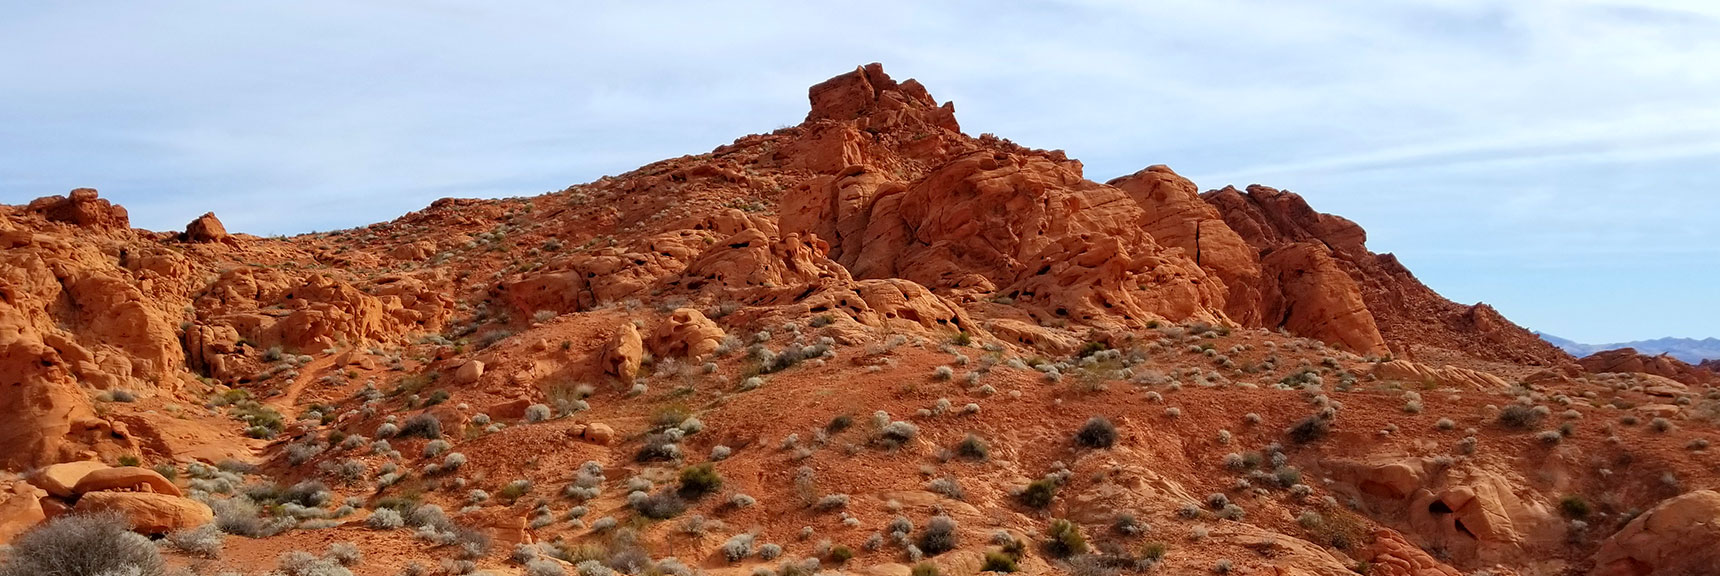 Western View of Elephant Rock Loop in Valley of Fire State Park, Nevada